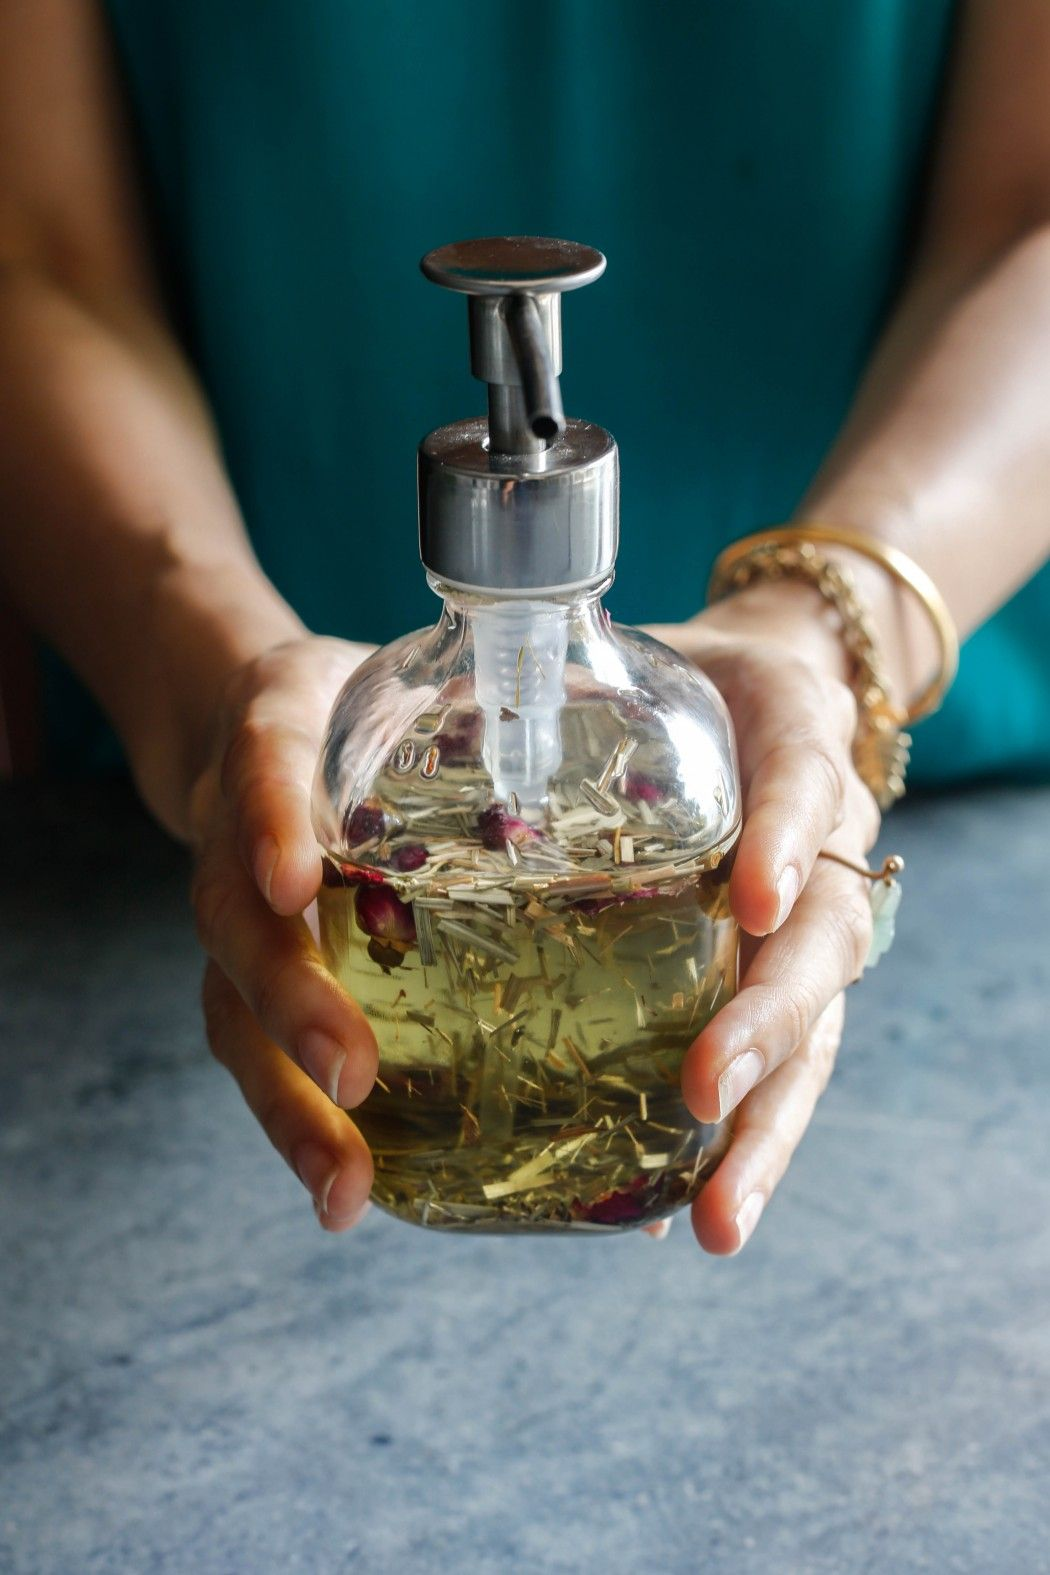 Summer Time Breeze Body Oil Recipe (With images) Body